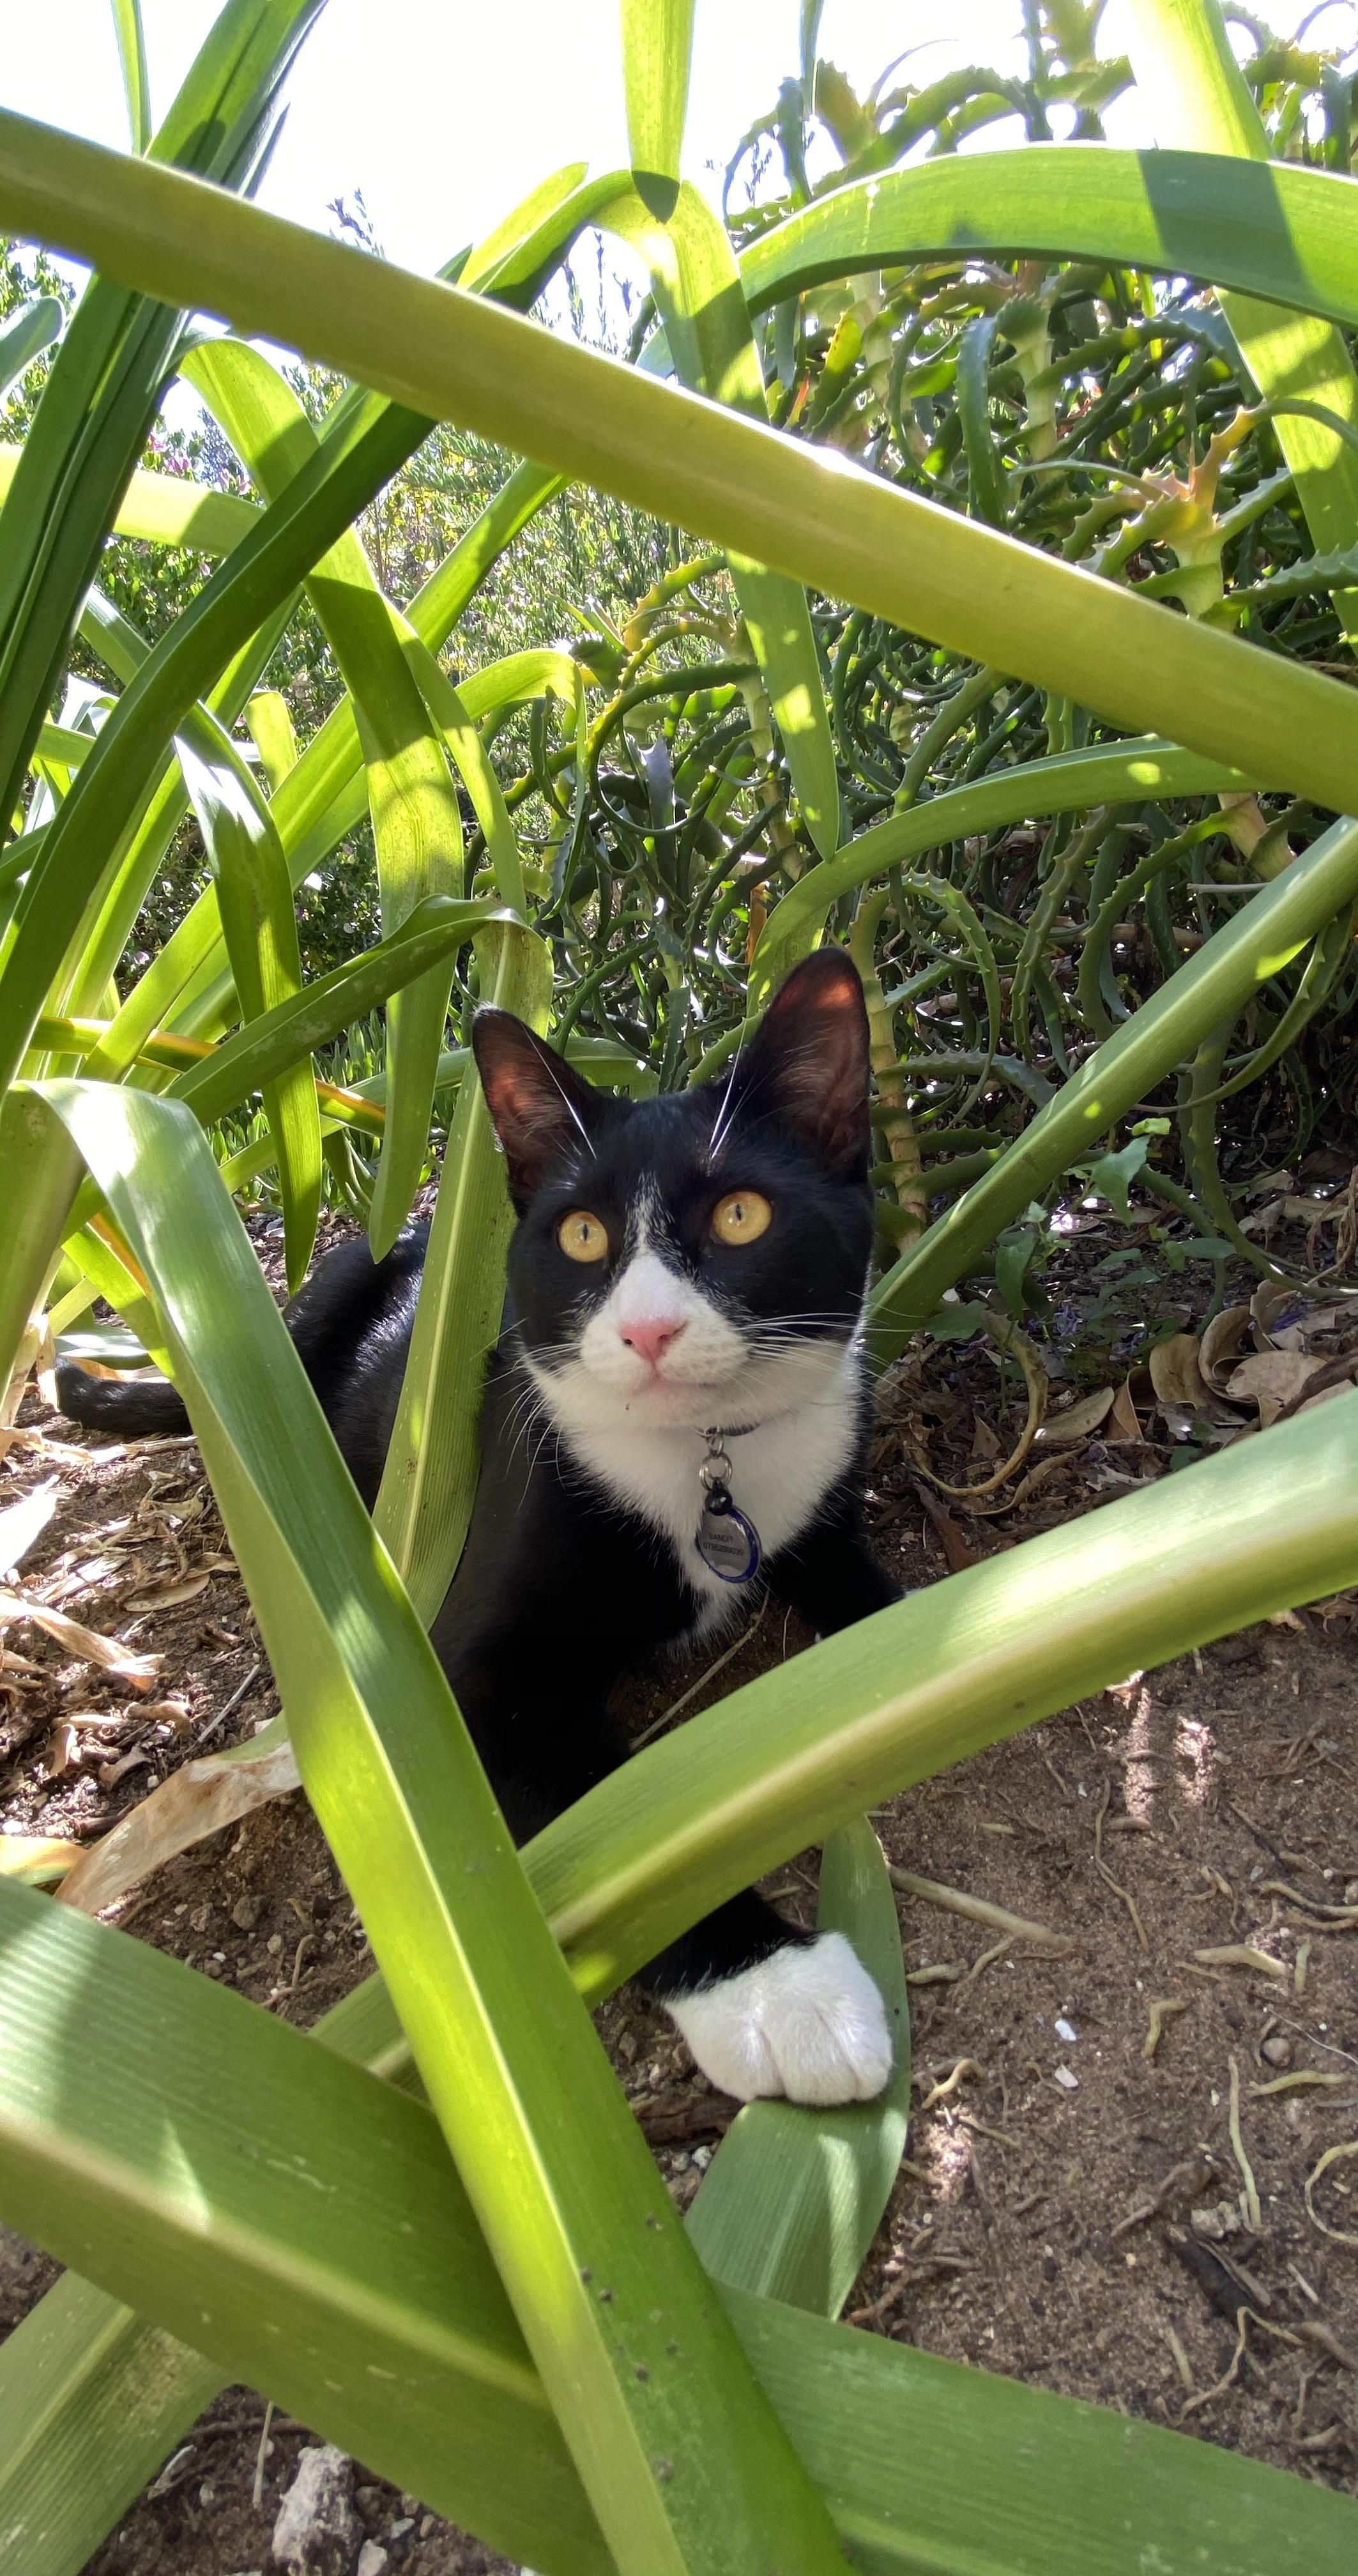 ITAP of my cat in the garden#PHOTO #CAPTURE #NATURE #INCREDIBLE